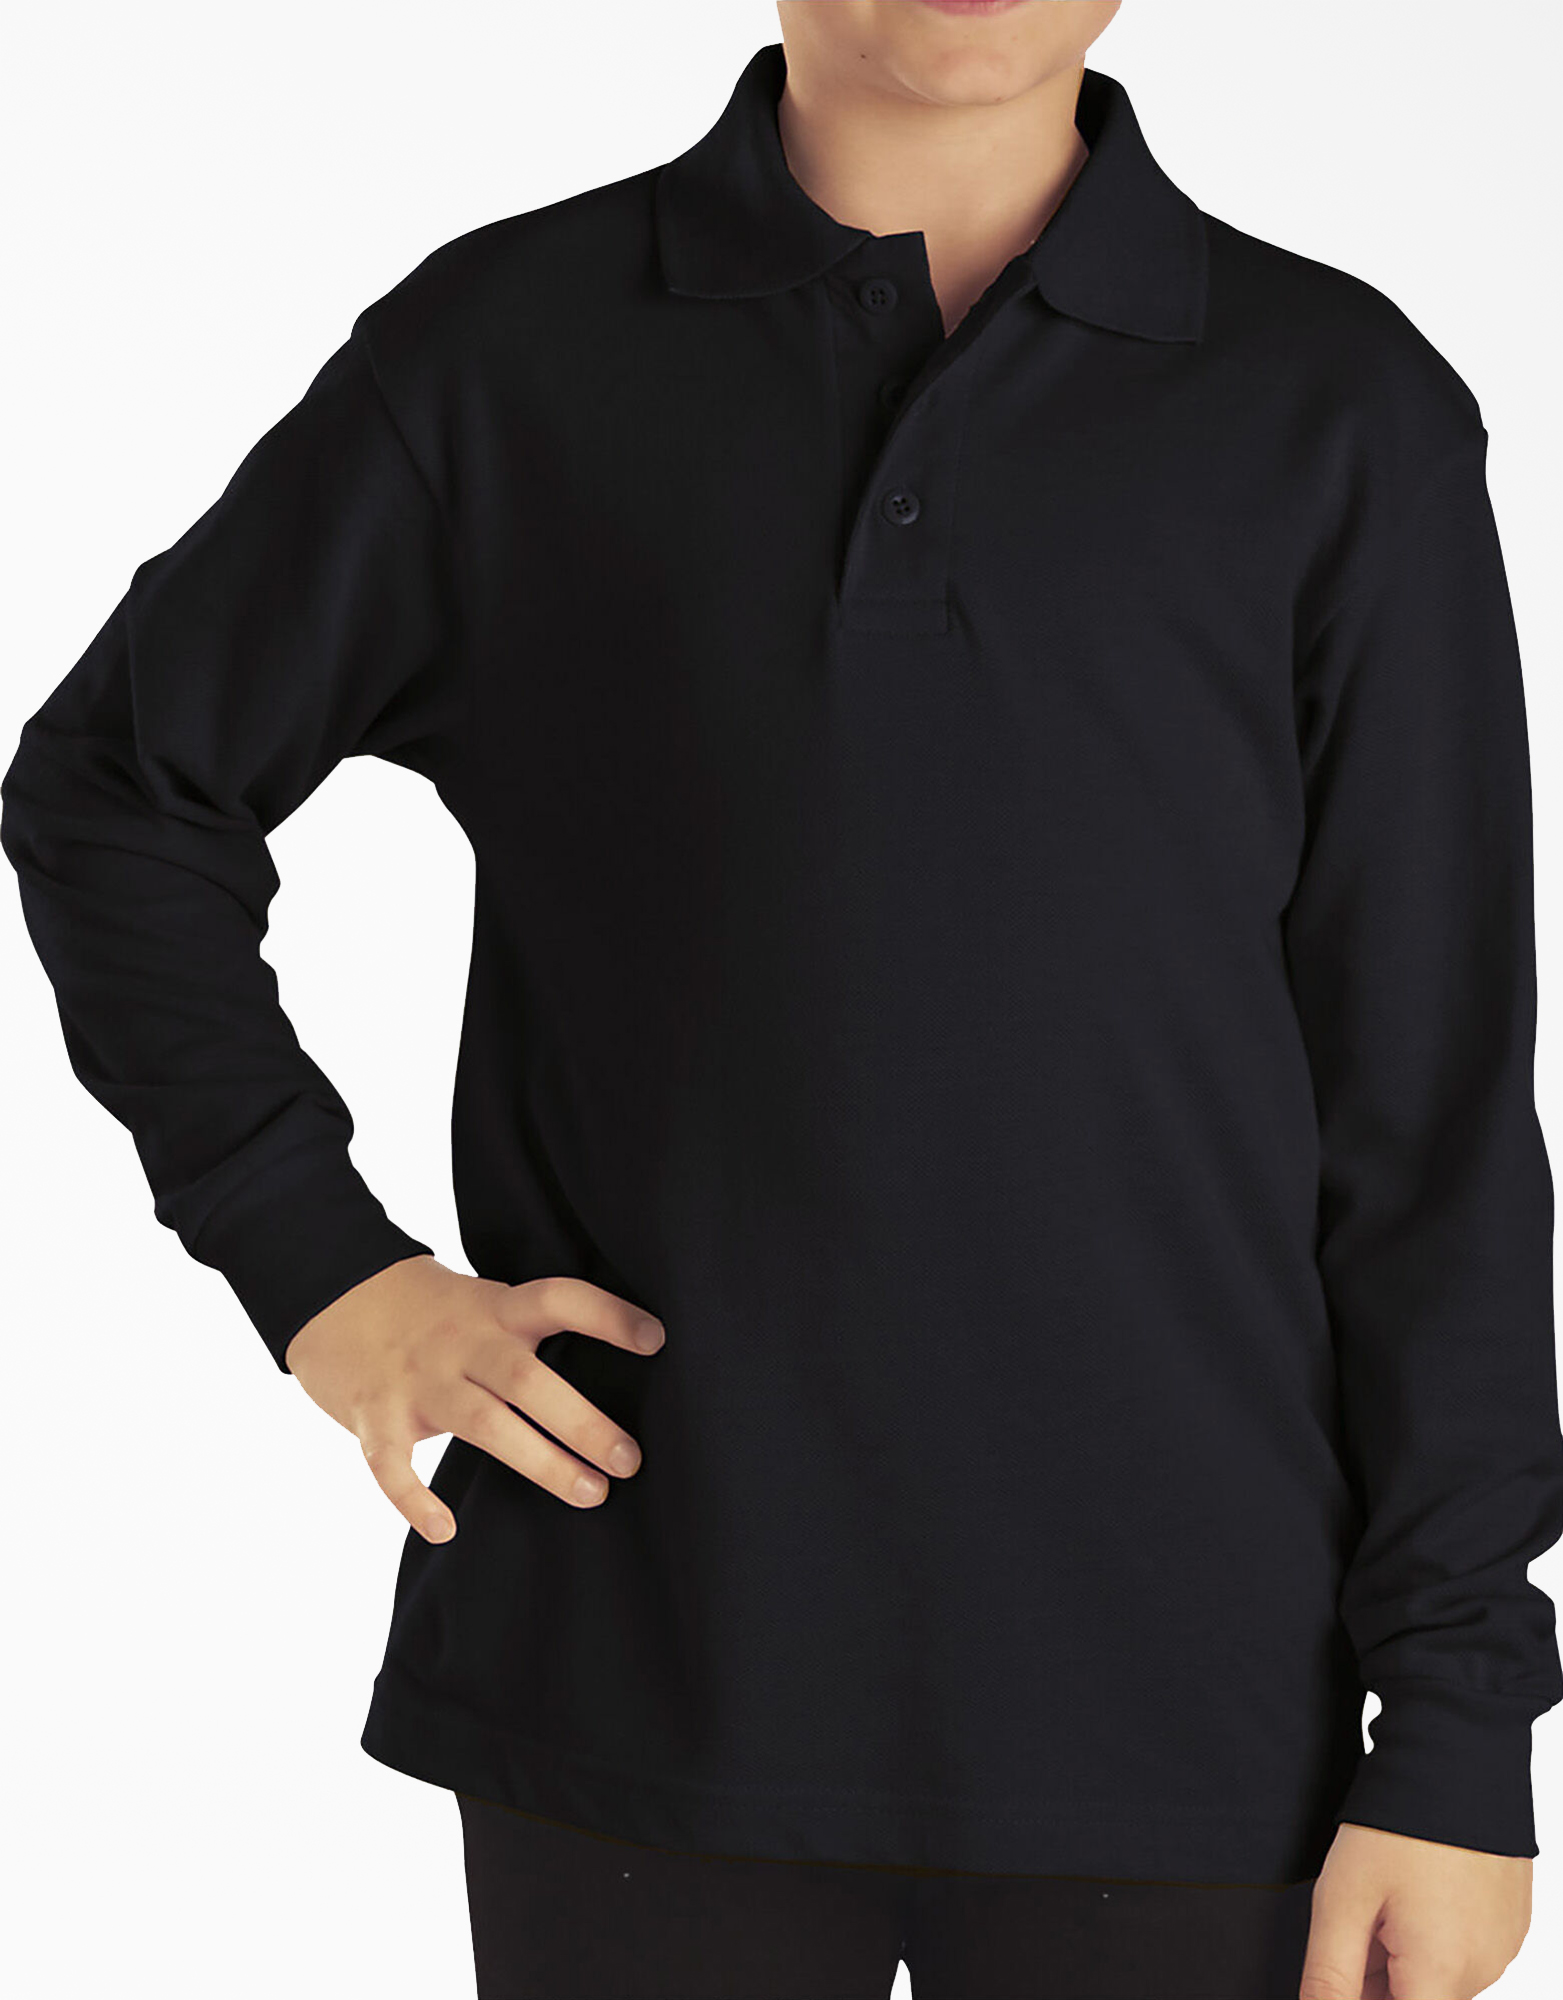 Kids' Long Sleeve Piqué Polo Shirt - Black (KBK)